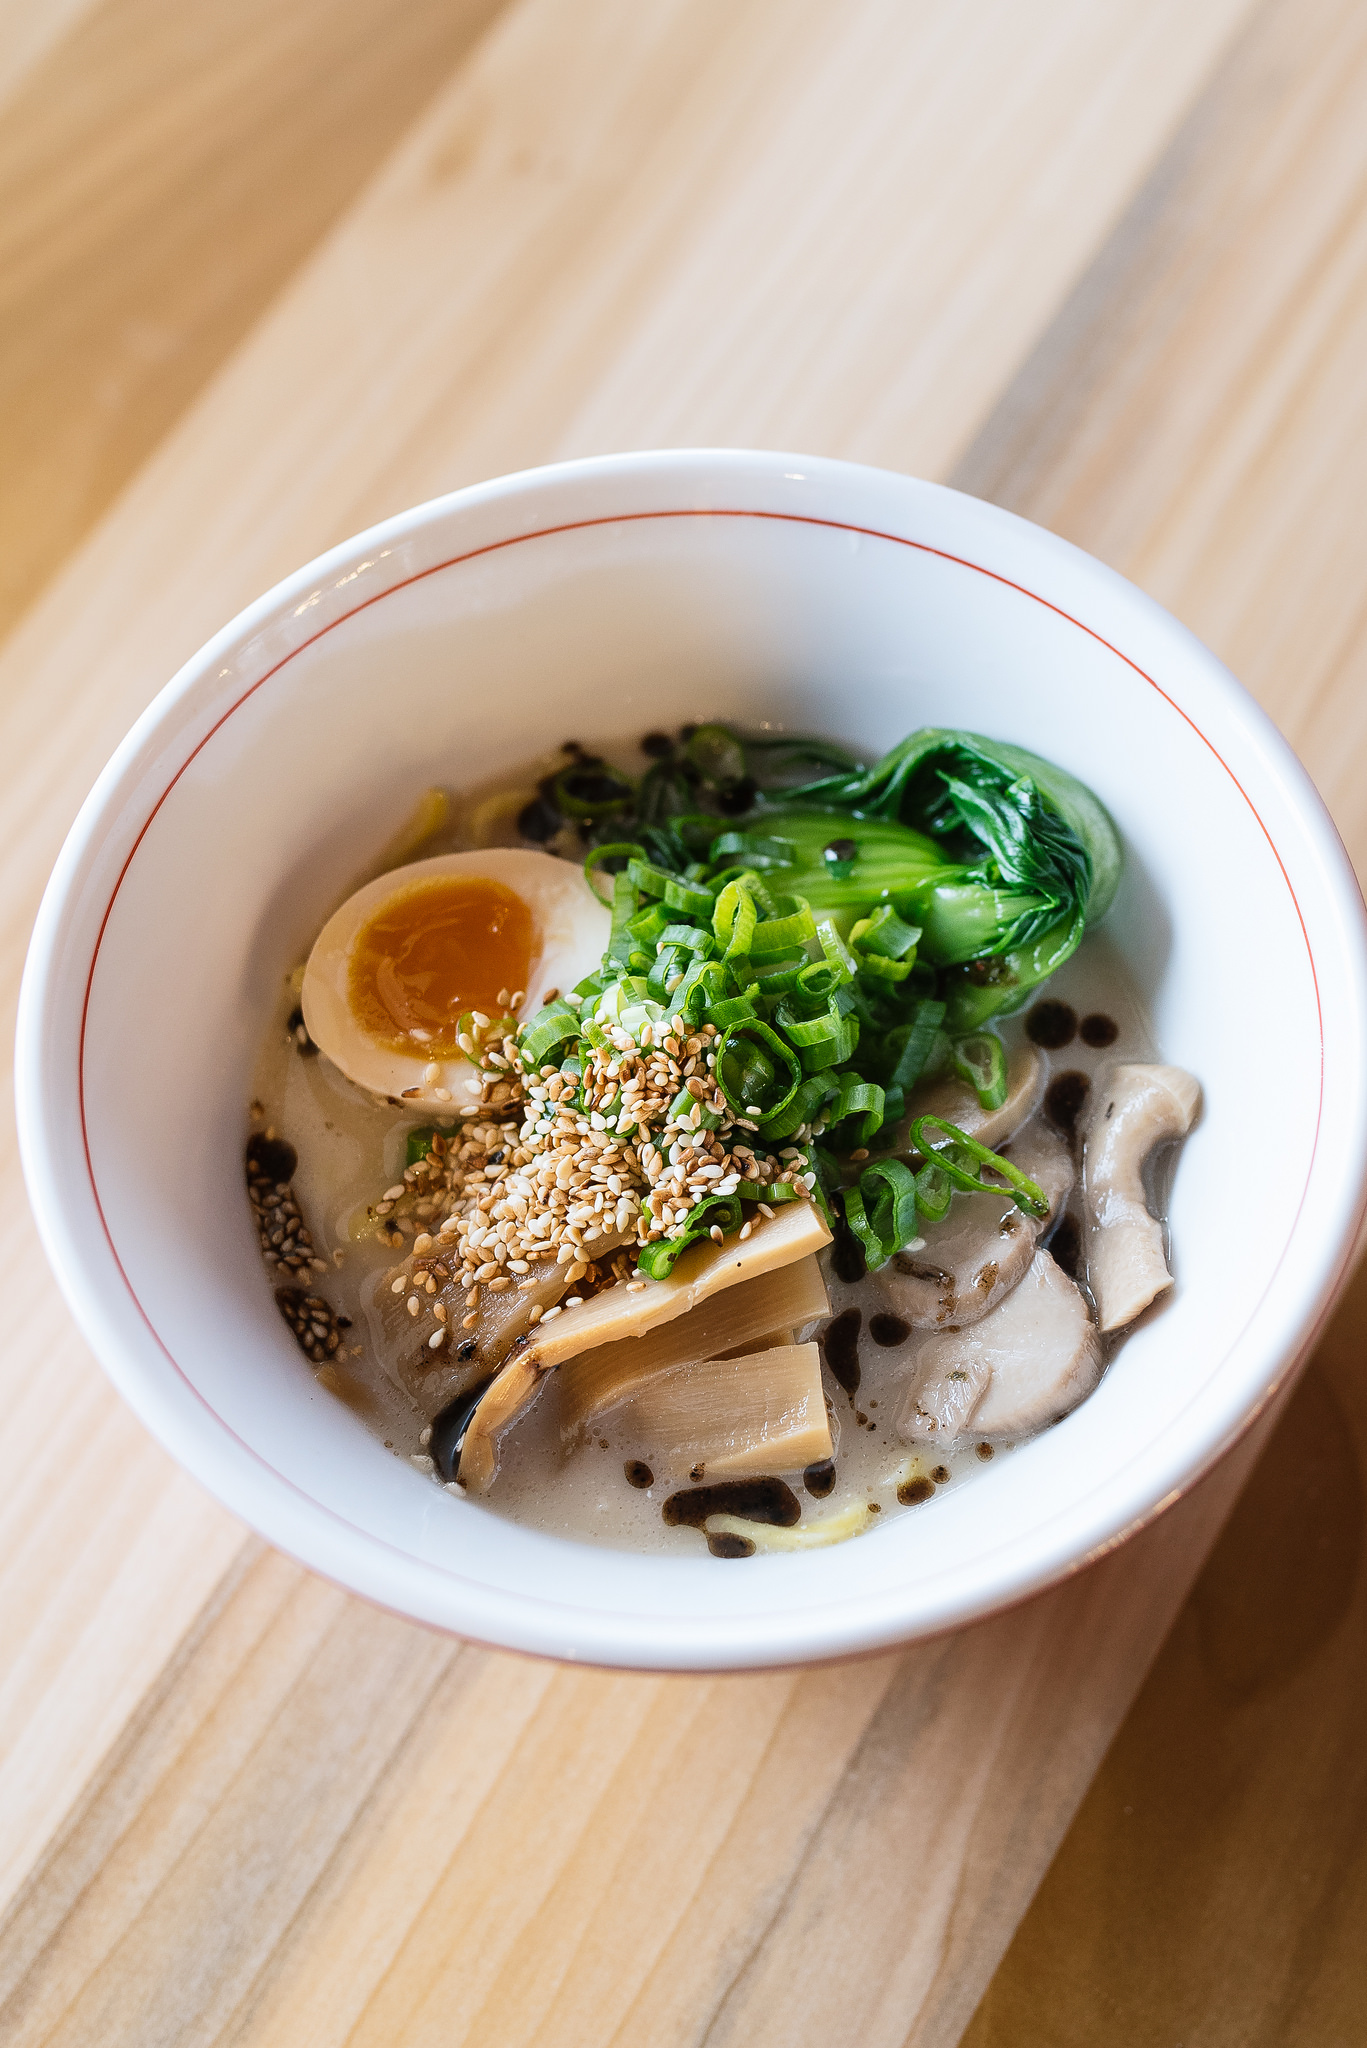 7. Nudo House - top dish: o'miso spicy/shroomed out [tie]